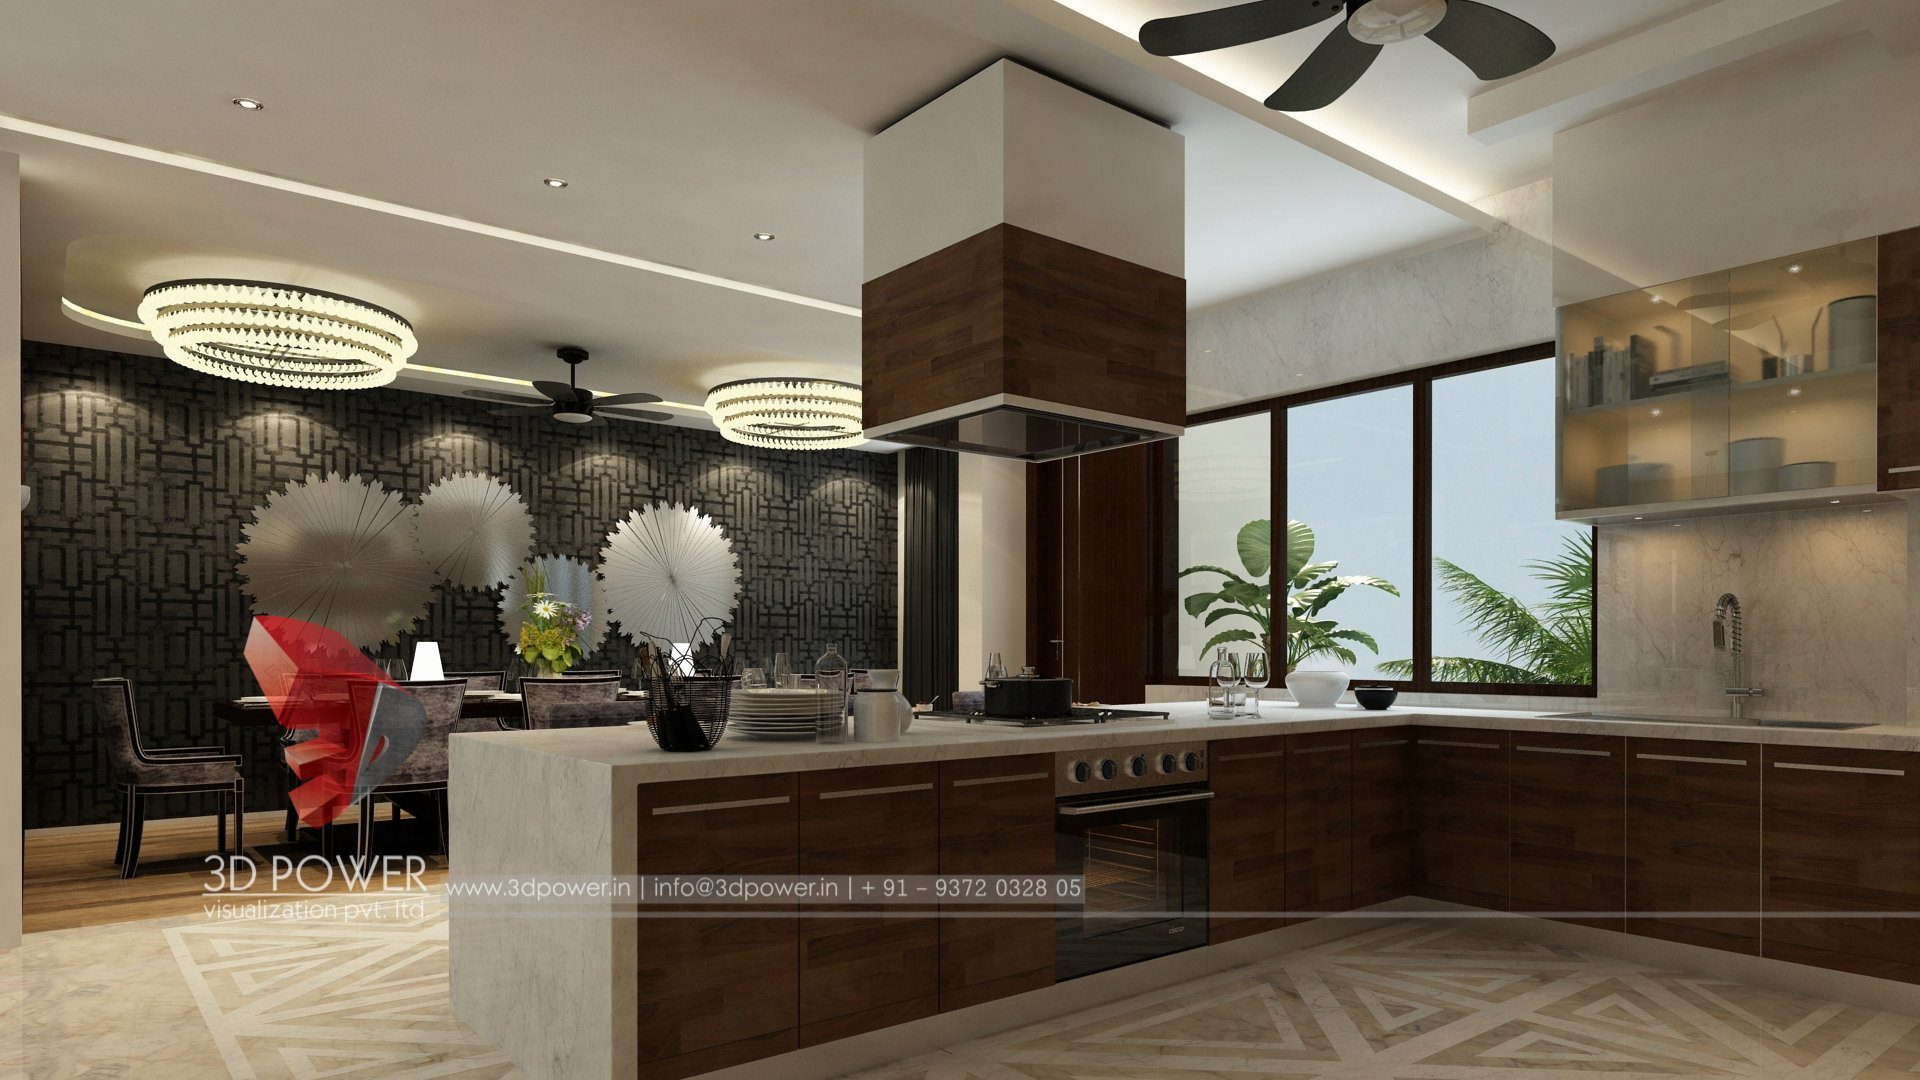 Merveilleux ... 3d Interior Design Rendering Services Kitchen Interior Design ...